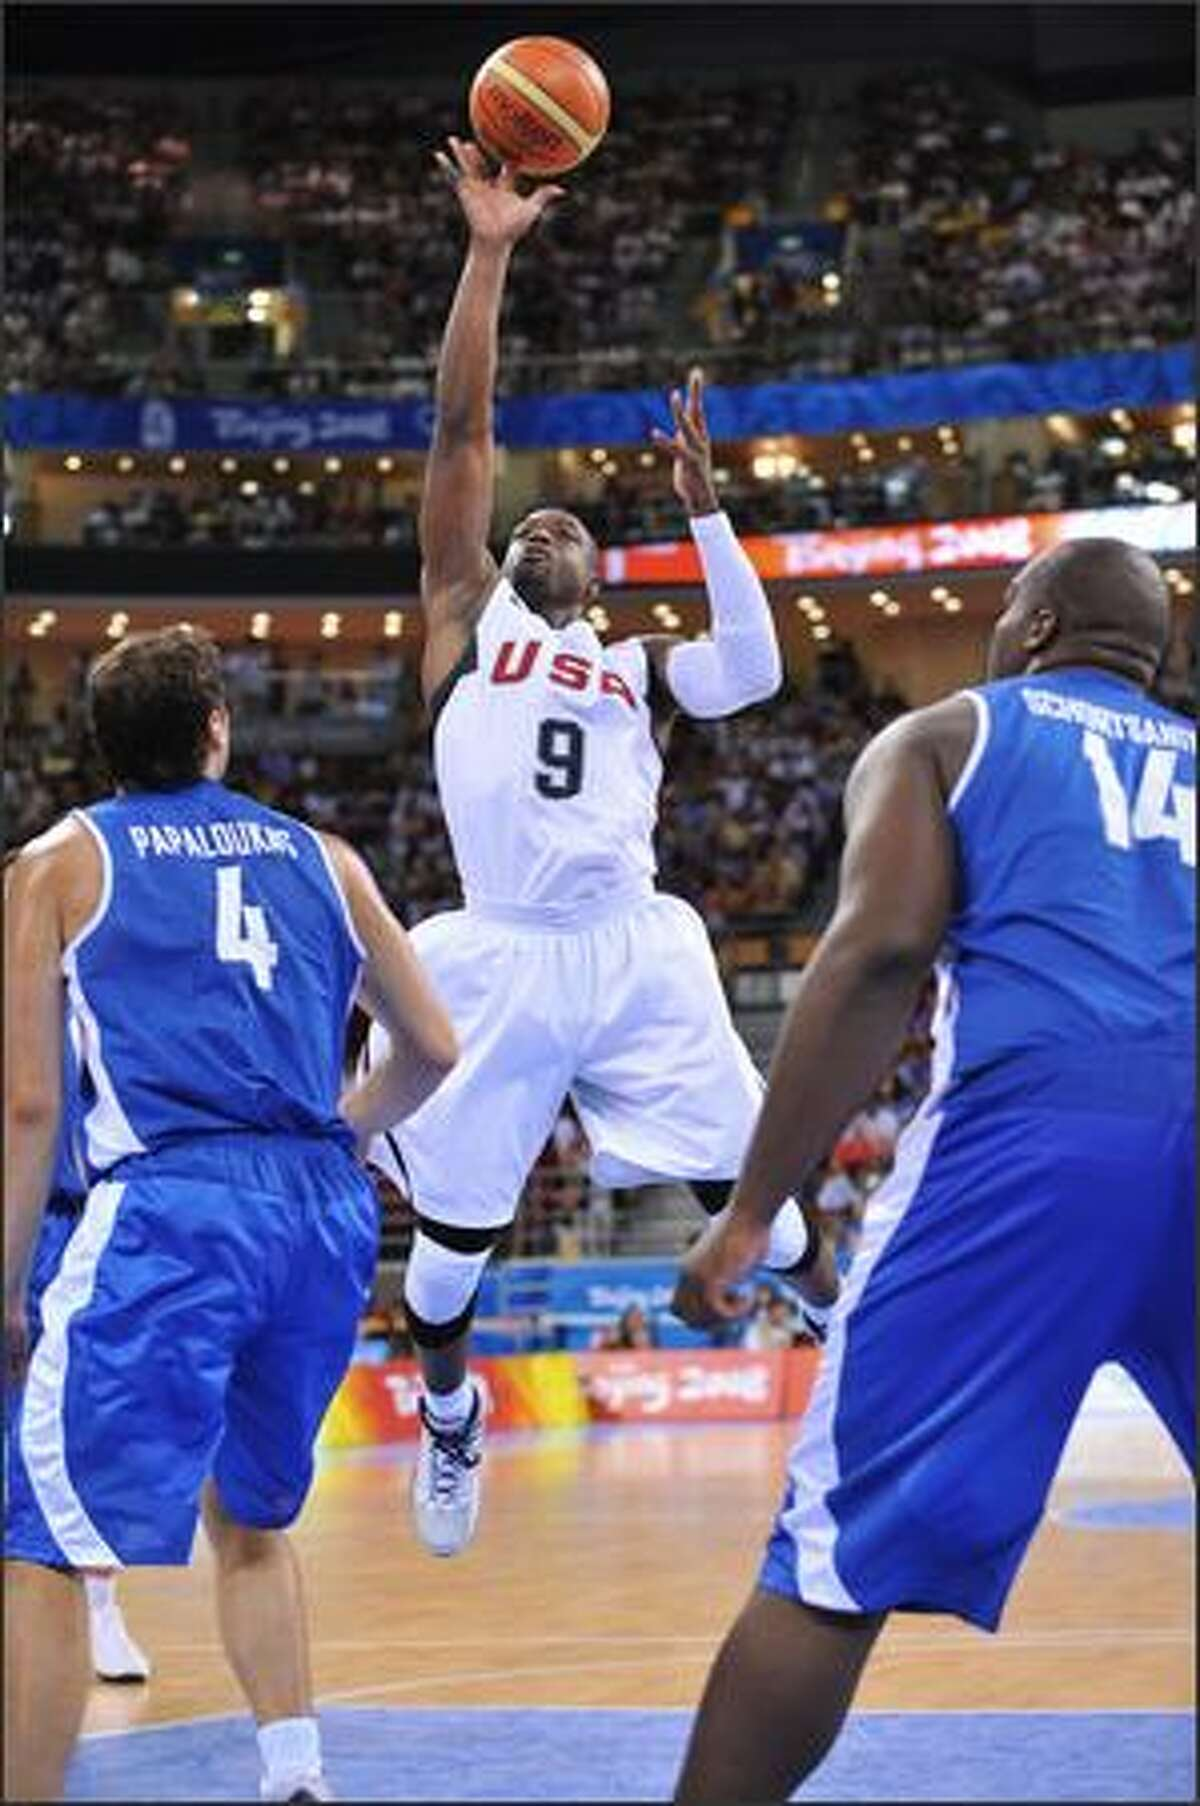 Dwyane Wade #9 of the U.S. Men's Senior National Team shoots against Theo Papaloukas #4 of Greece during a men's preliminary basketball game at the 2008 Beijing Olympic Games at the Beijing Olympic Basketball gymnasium on Thursday in Beijing, China.